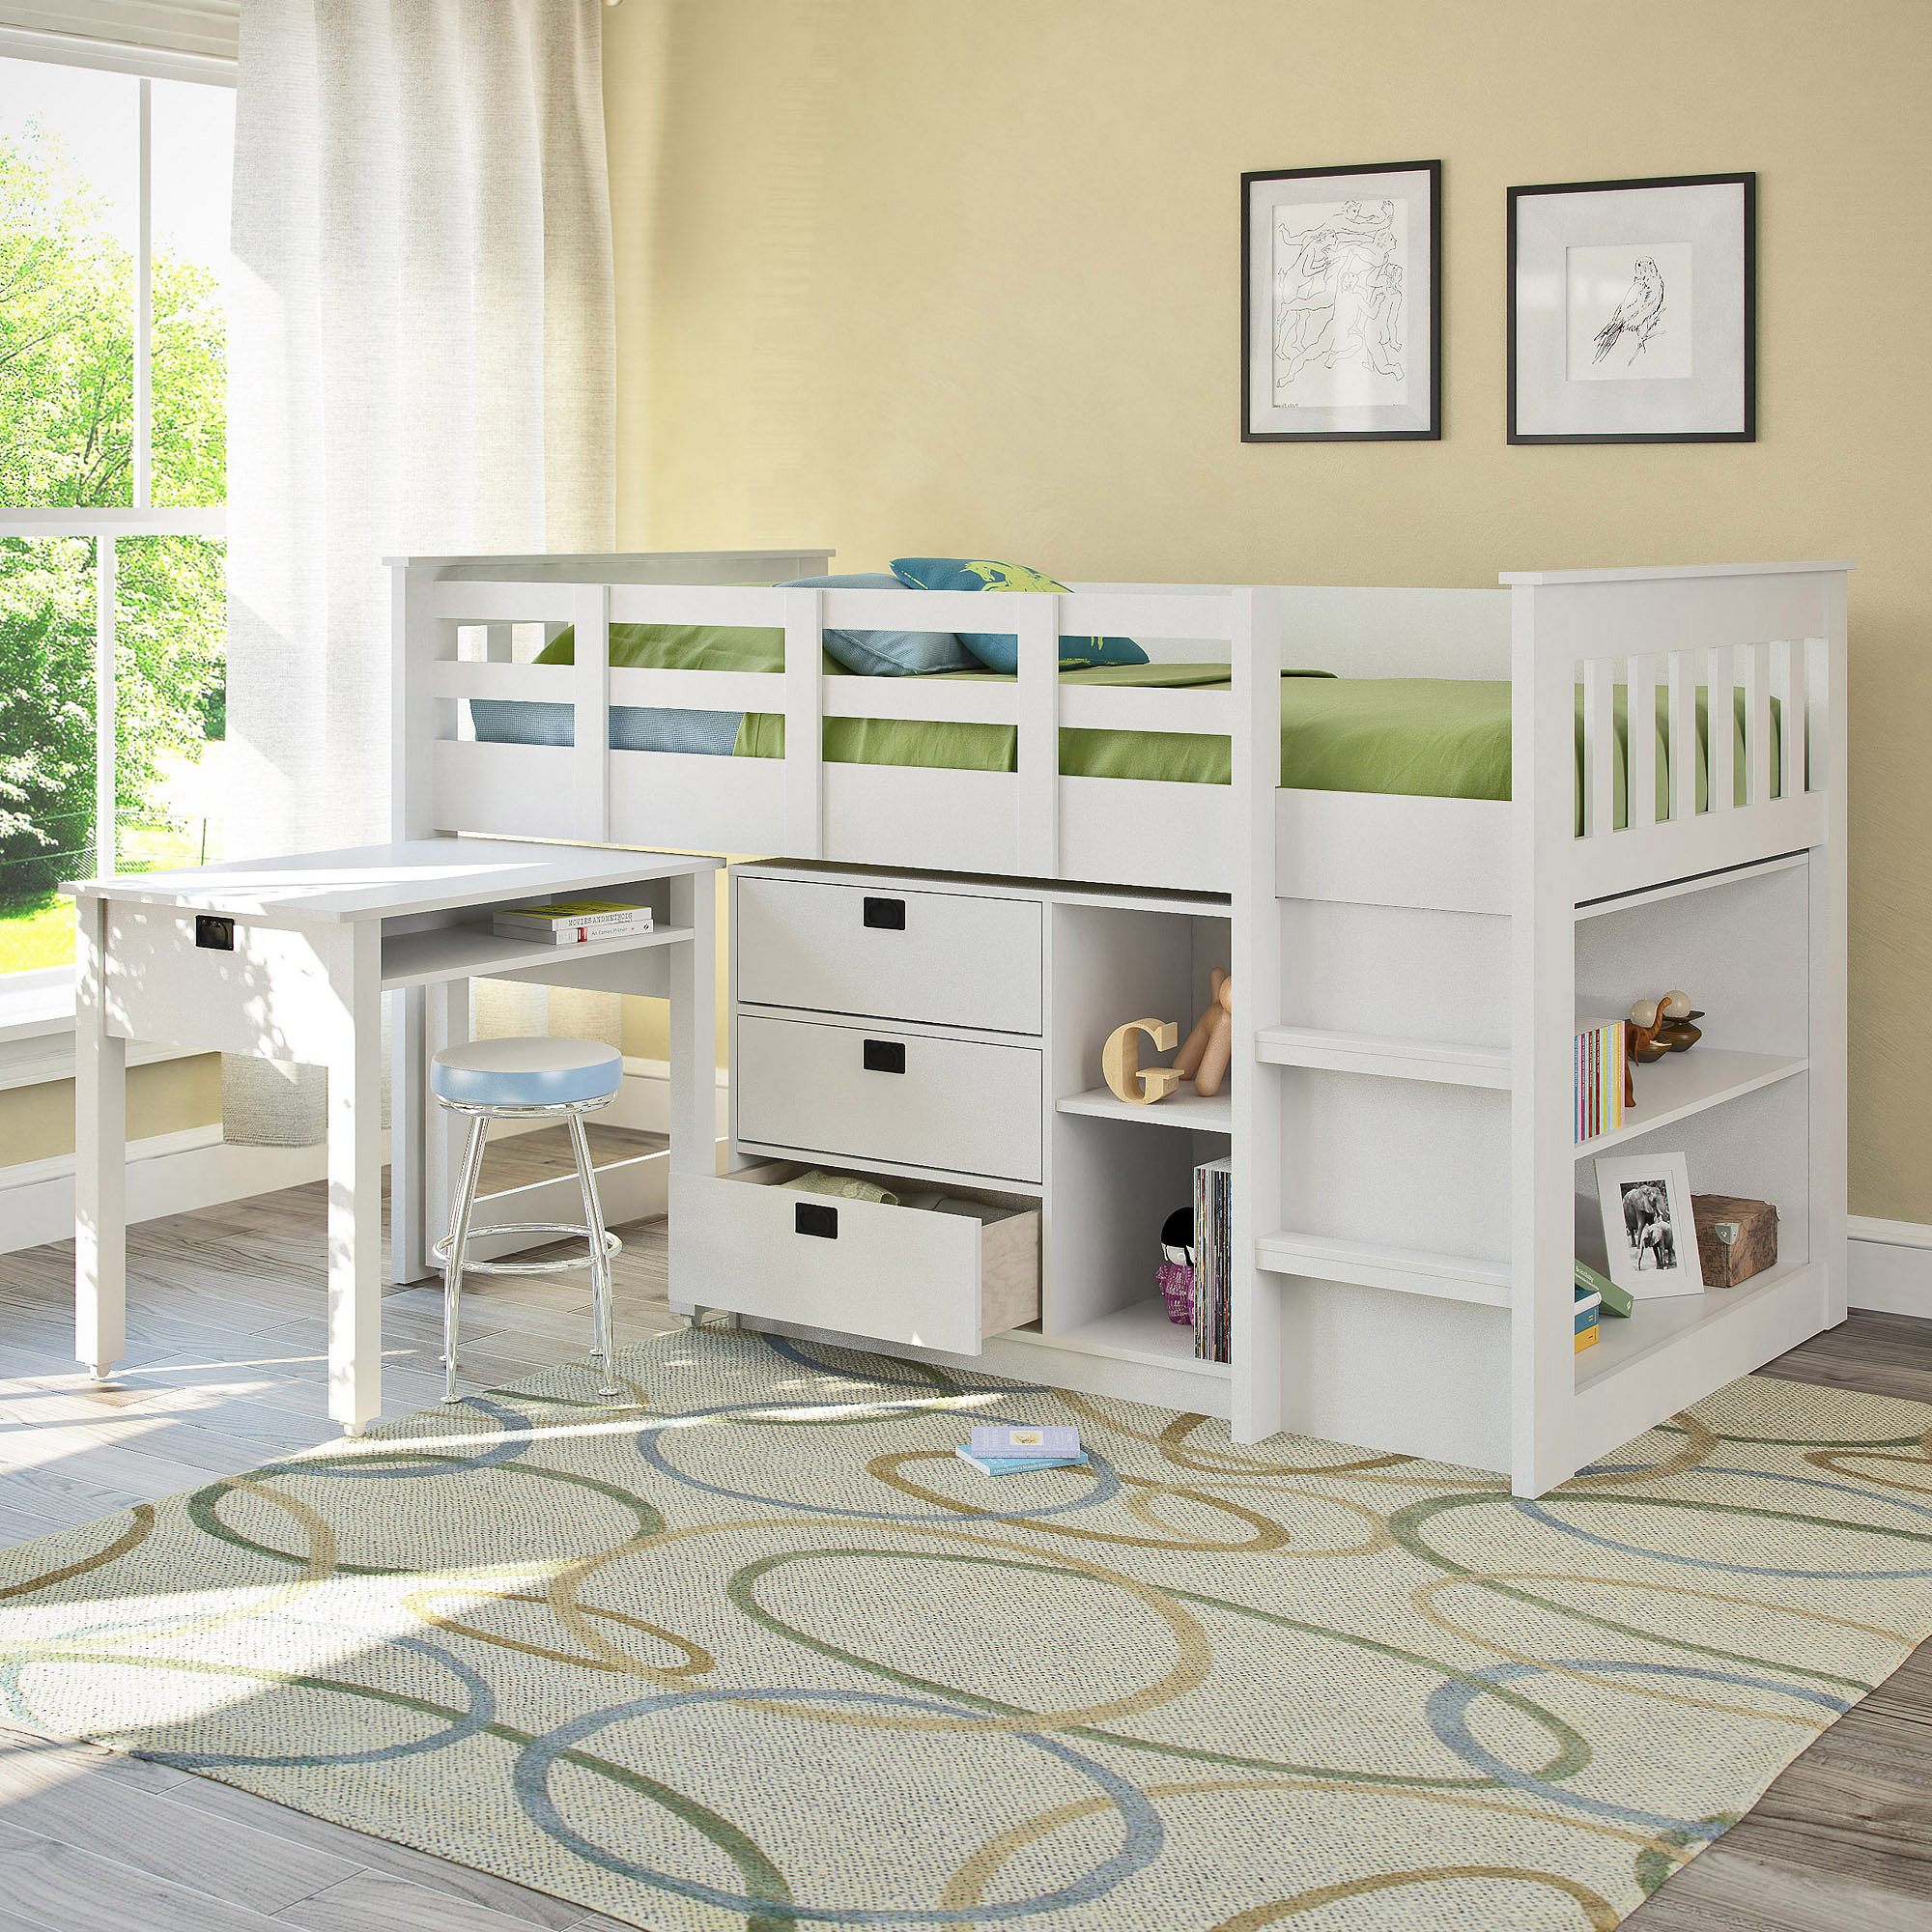 Corliving madison twin loft bed with desk and storage multiple colors walmart com